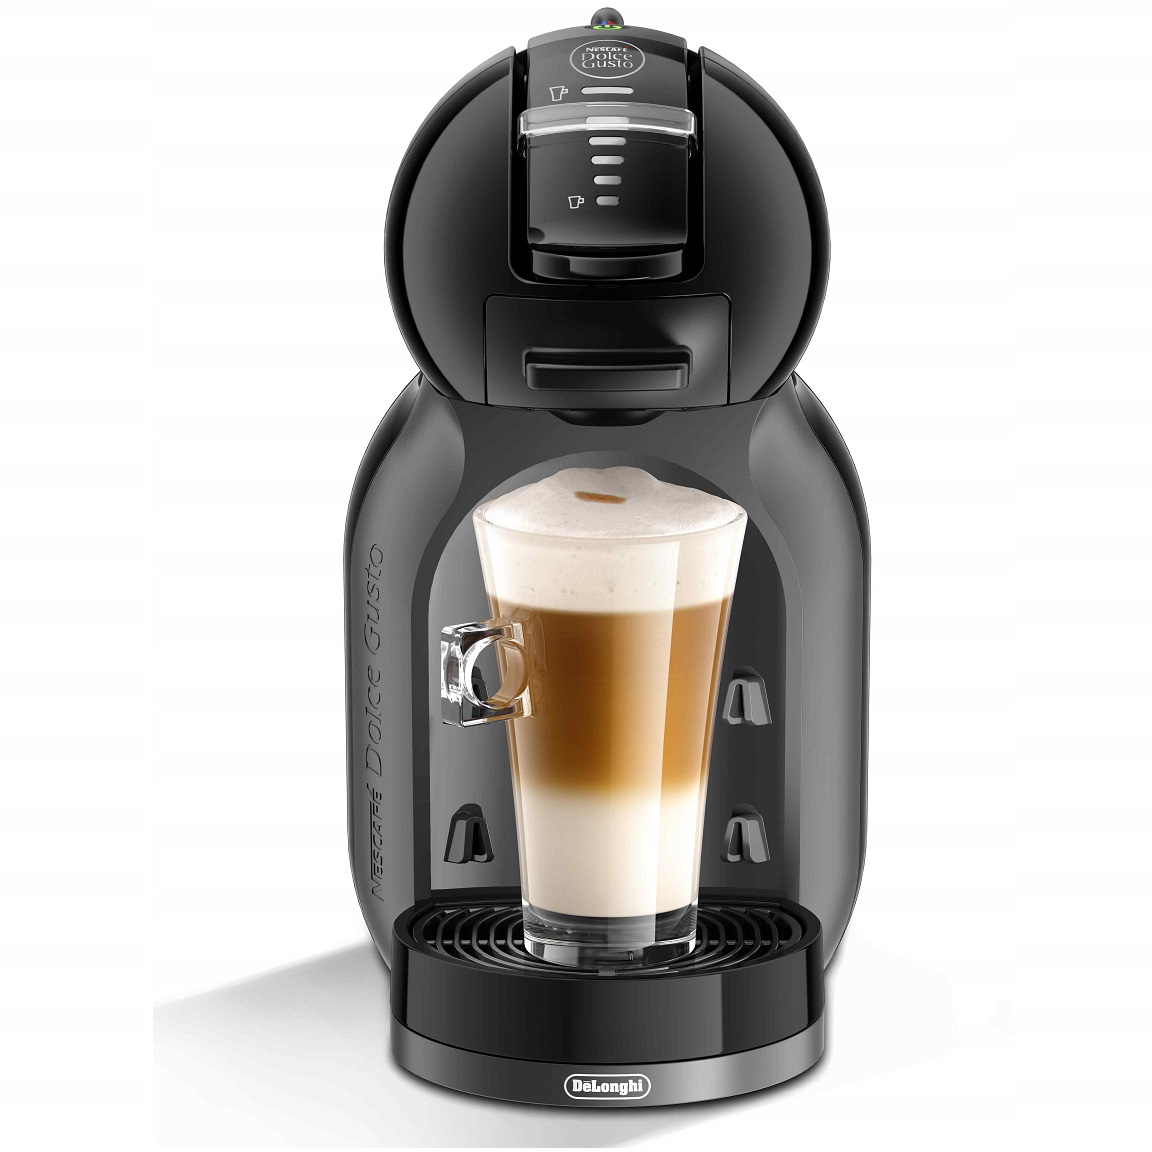 Cafetera Dolce Gusto mini EDG305 GR